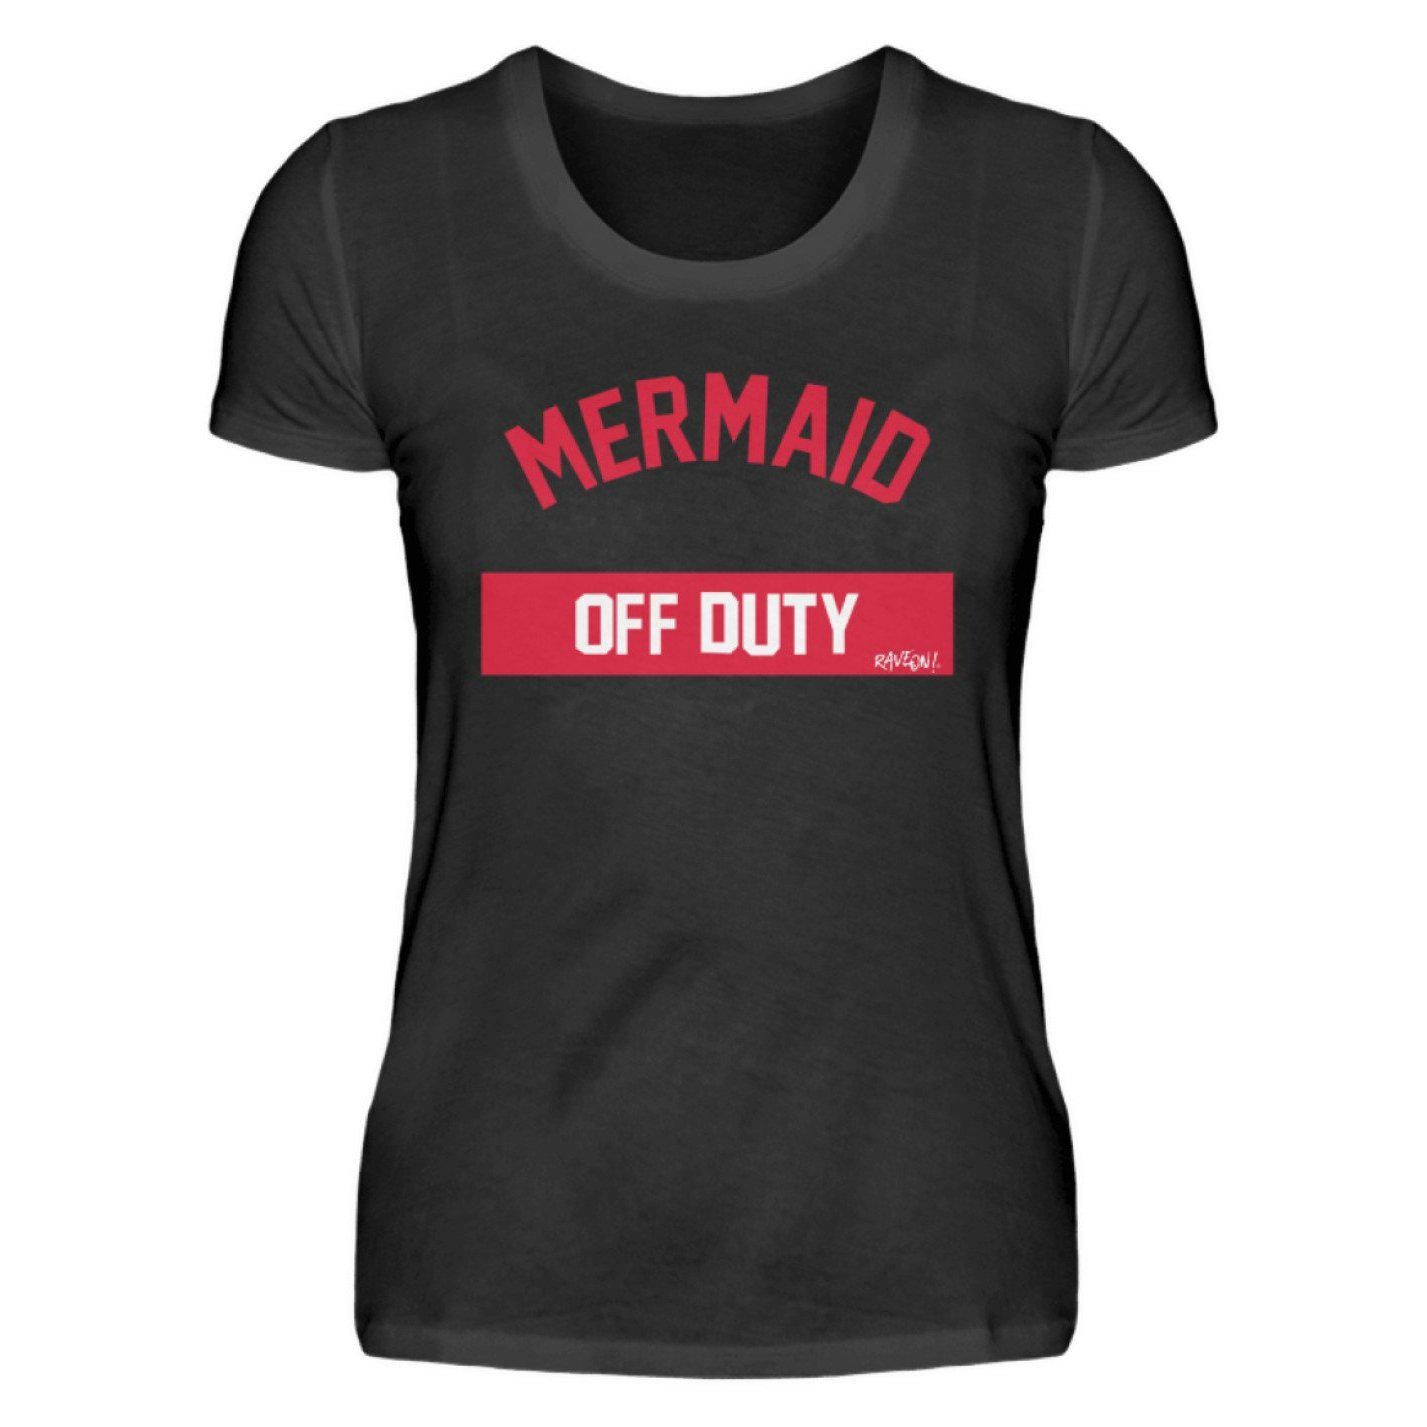 Mermaid off duty - Rave On!® - Ladies Shirt Ladies Basic T-Shirt - Rave On!® the club & techno scene shop for cool young fashion streetwear style & fashion outfits + sexy festival 420 stuff